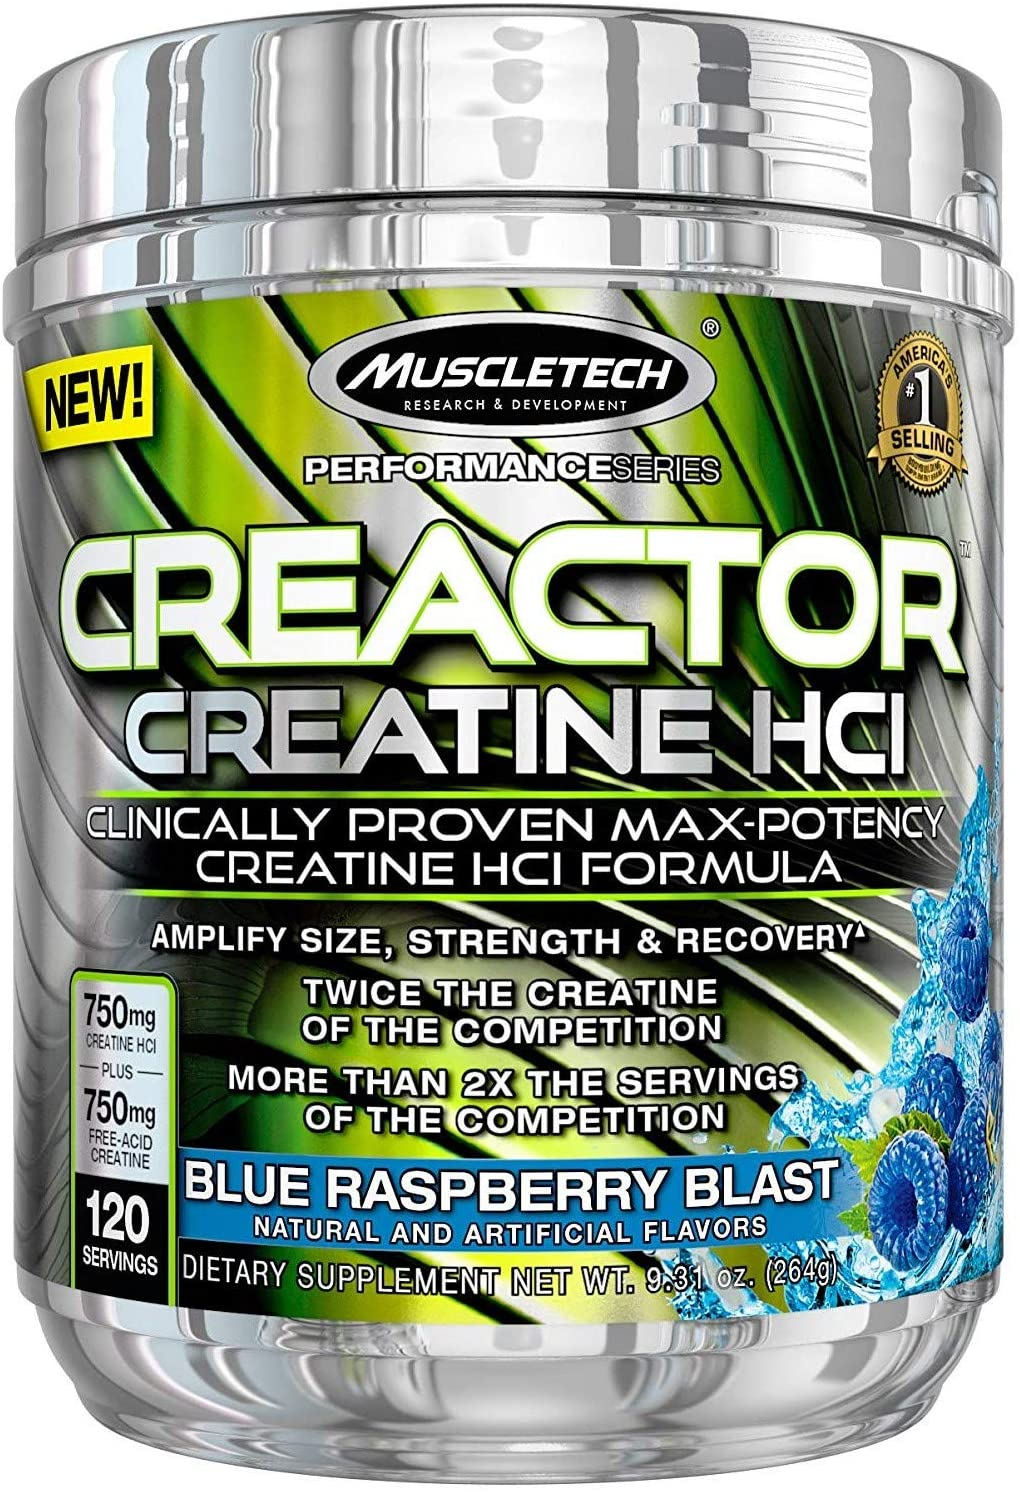 MuscleTech Creactor, Max Potency Creatine Powder, Micronized Creatine and Creatine HCl, Blue Raspberry, 120 Servings (264g)